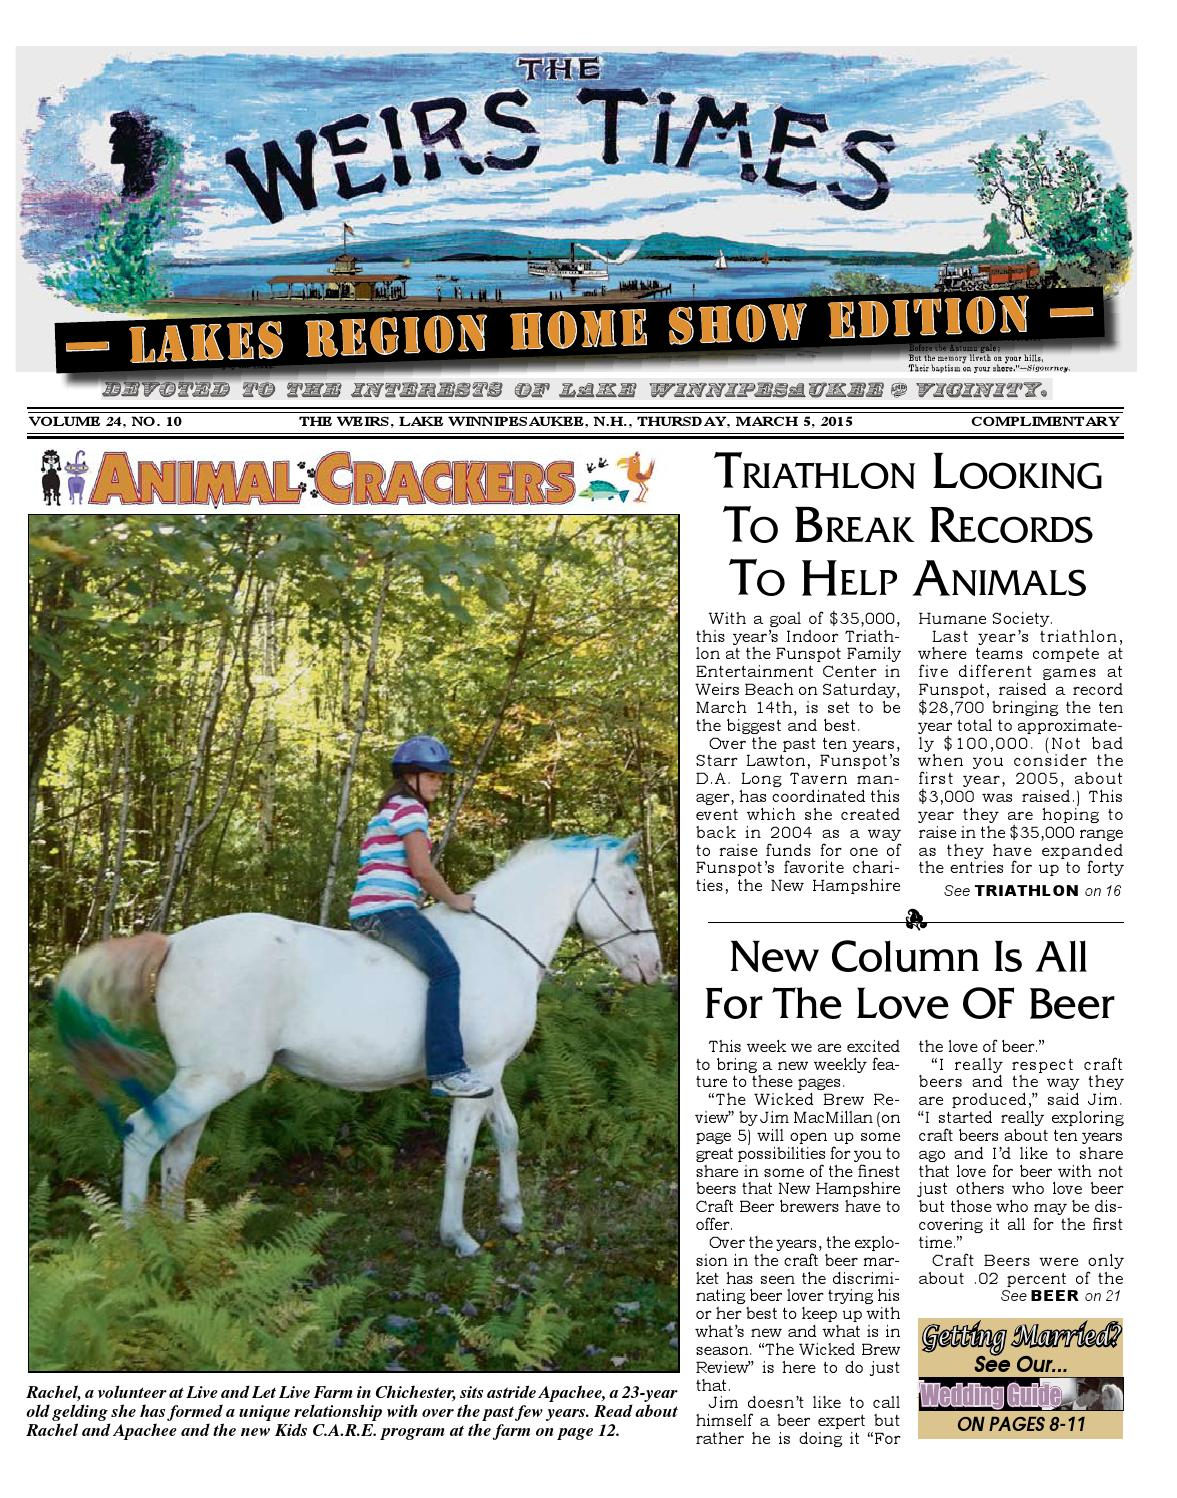 Company Times by Publishing 030515 Weirs Weirs The issuu WDHIE29Y